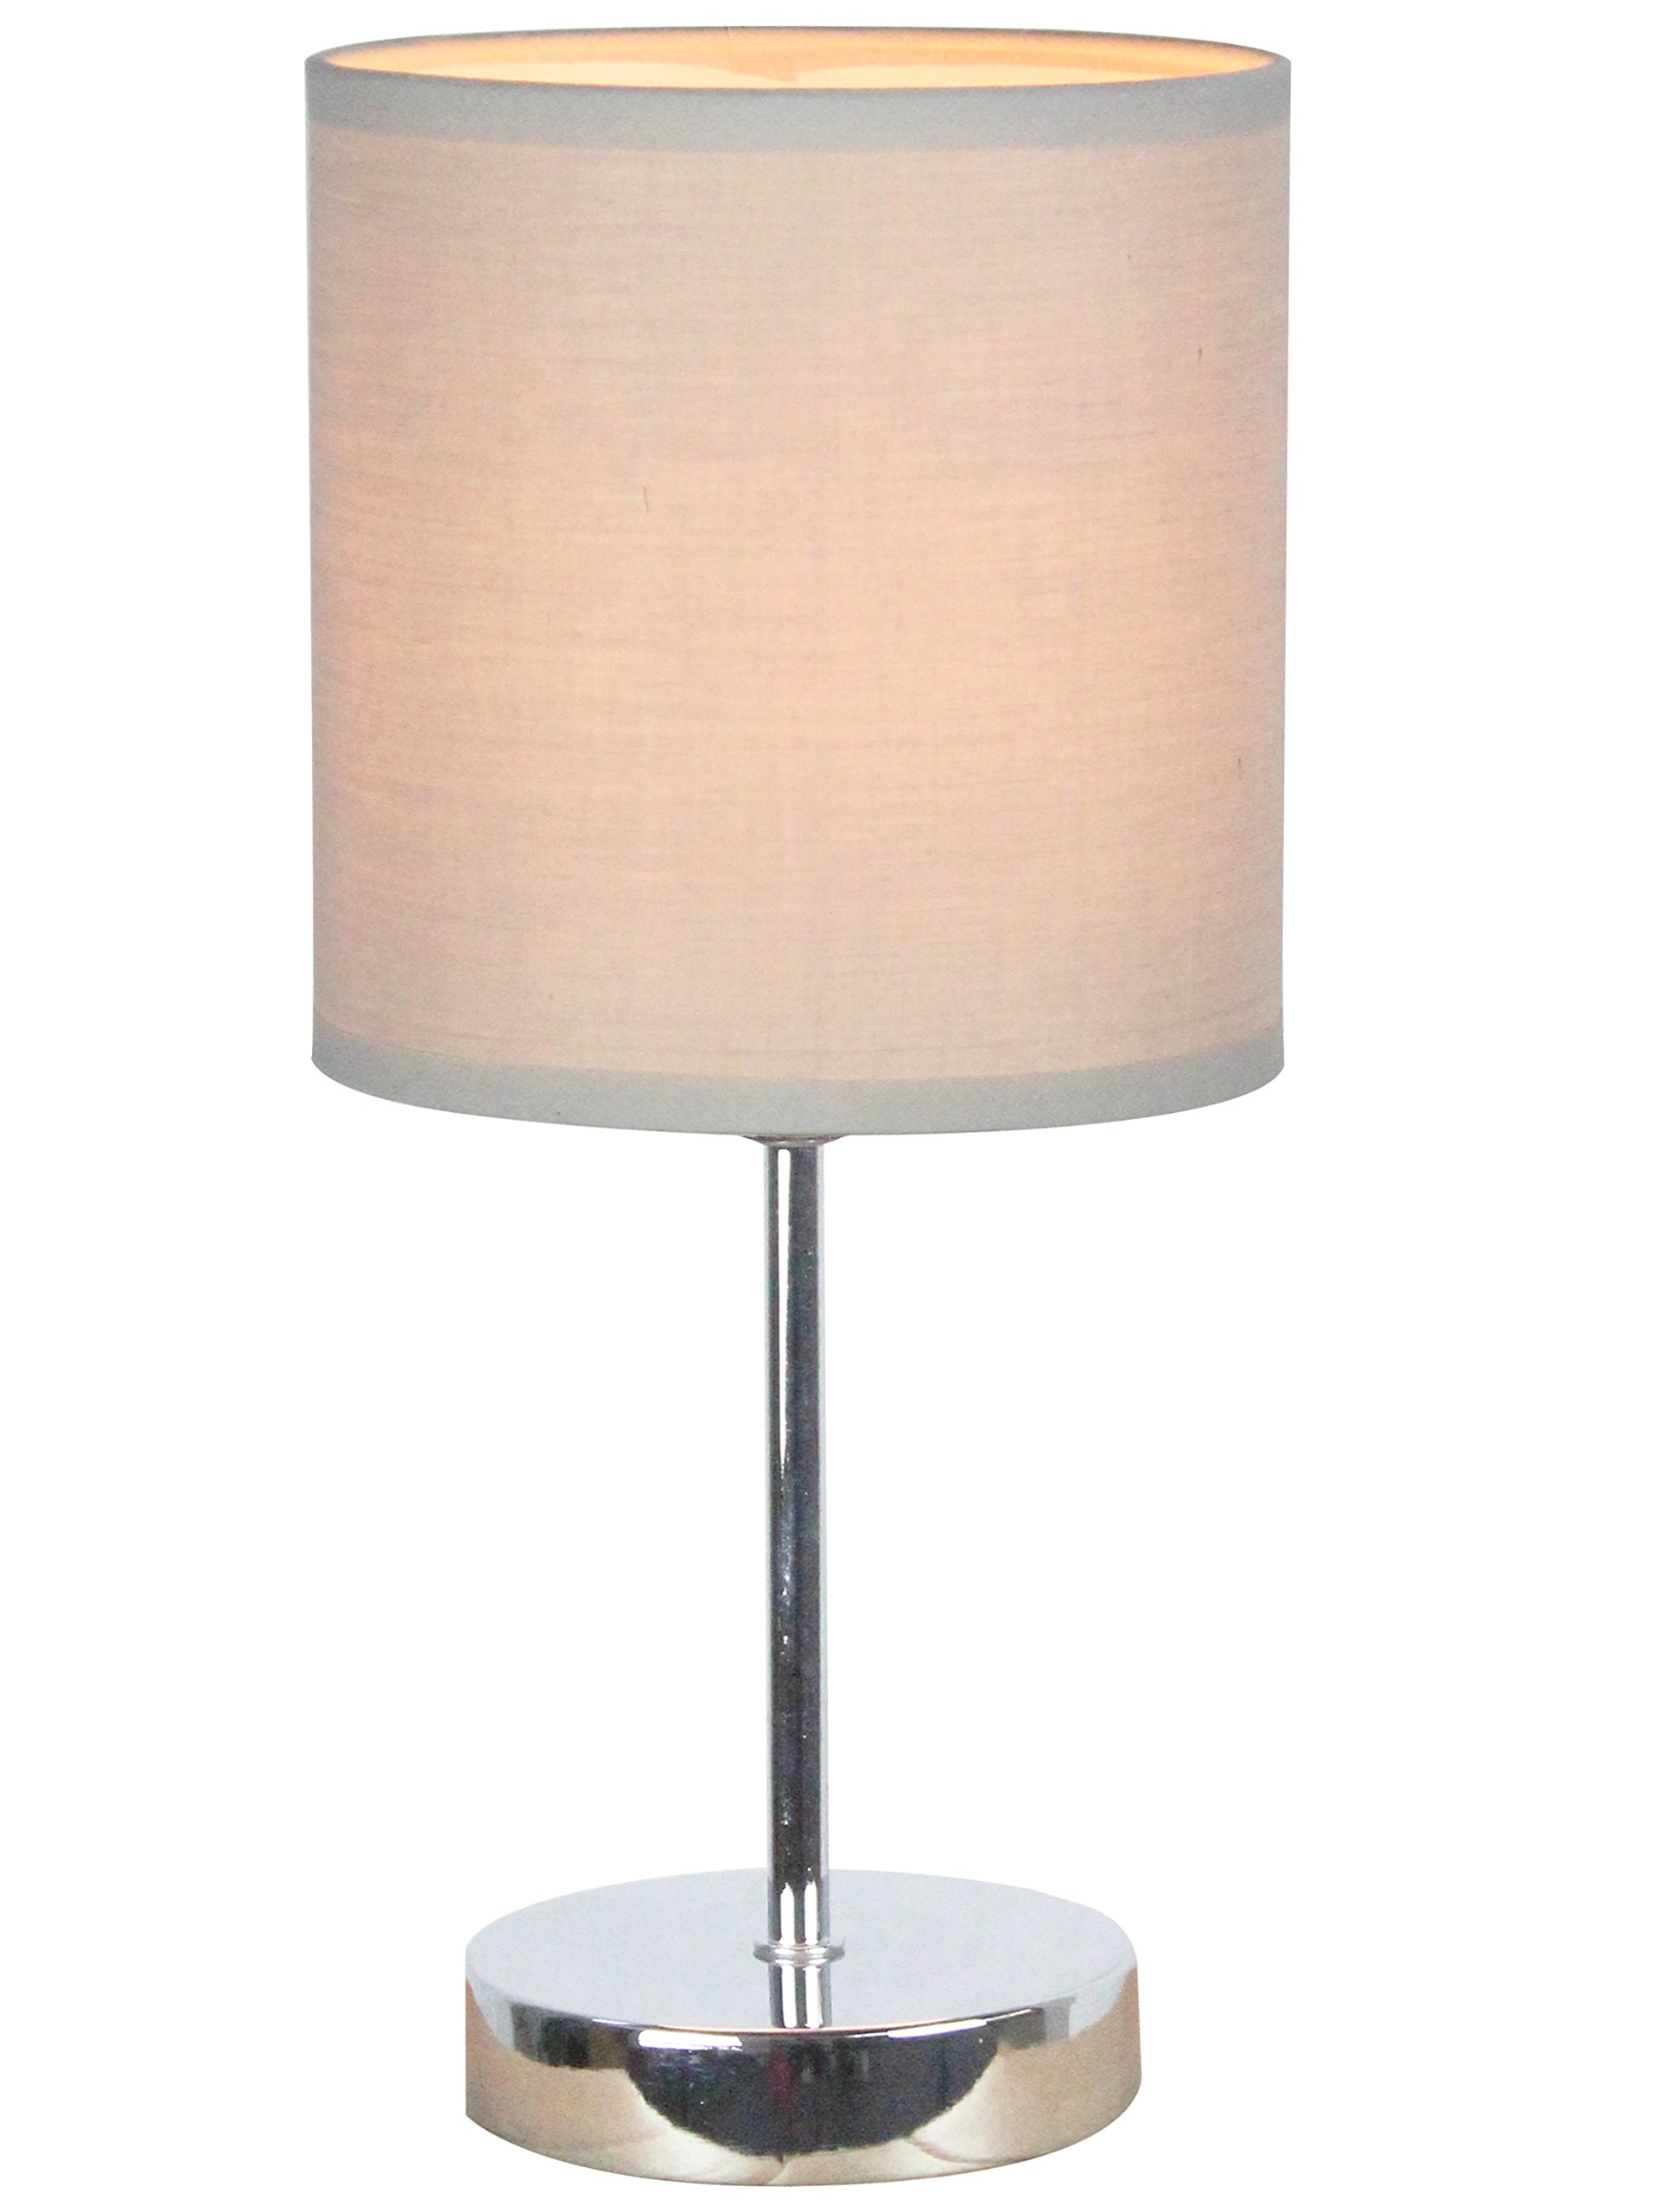 Simple Designs Home LT2007-GRY Simple Designs Chrome Mini Basic Table Lamp with Fabric Shade 11.89 x 5.51 x 5.51 Grey